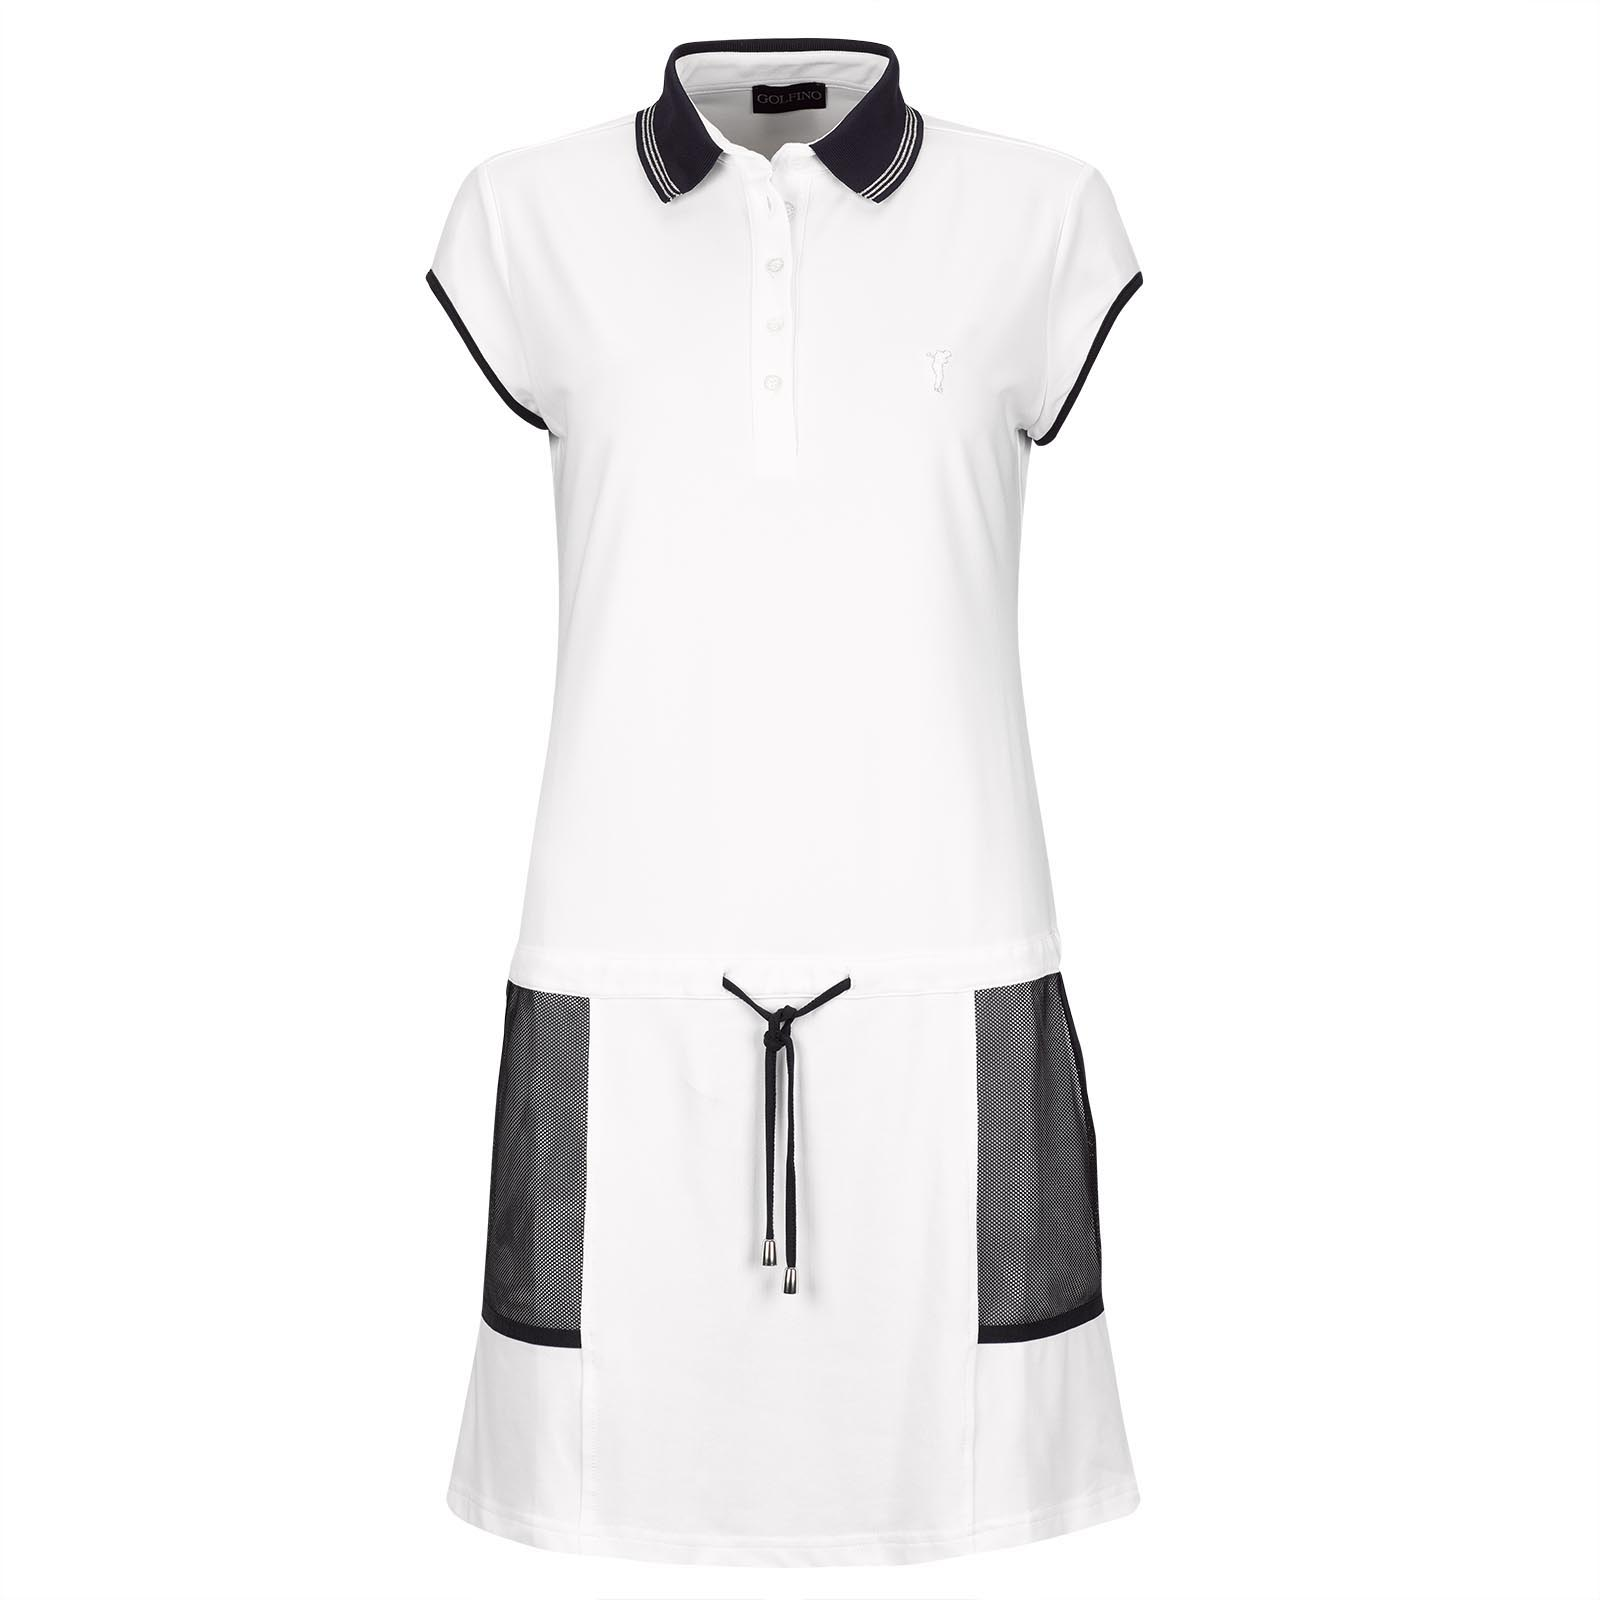 Trendiges Damen Piqué Golfkleid mit Sunprotection und Mesh-Applikationen